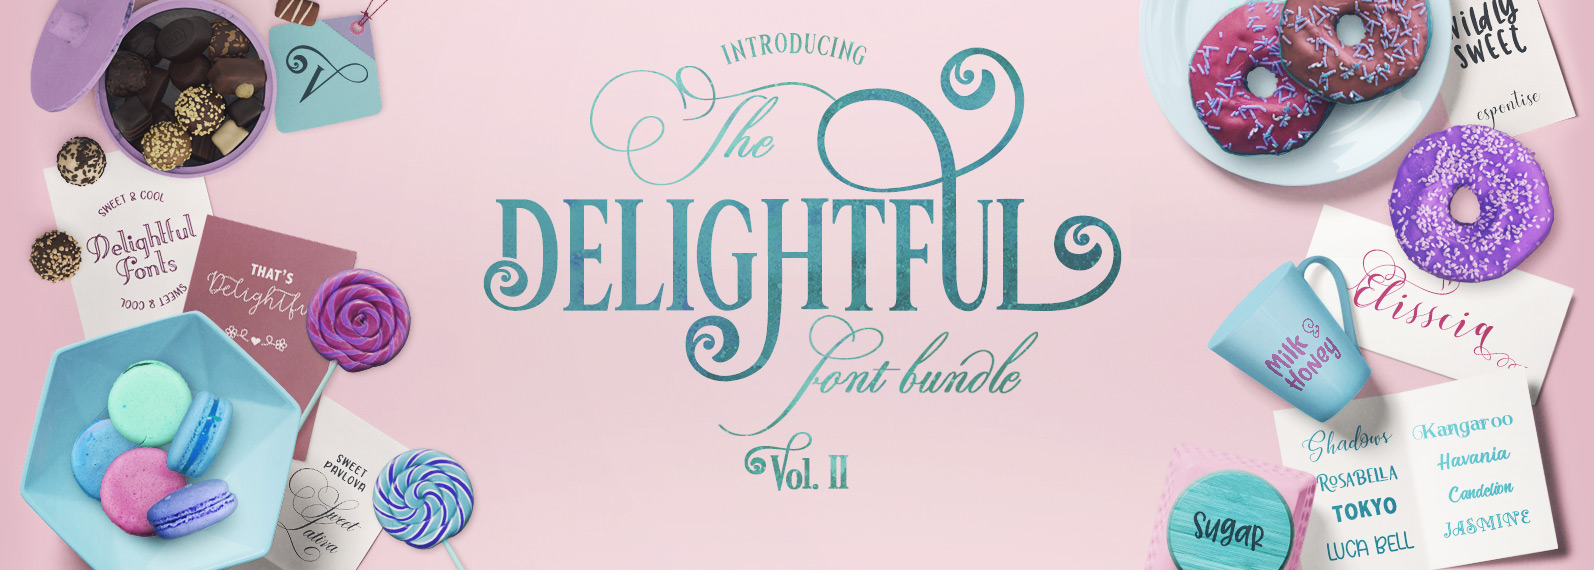 The Delightful Bundle Vol II Cover